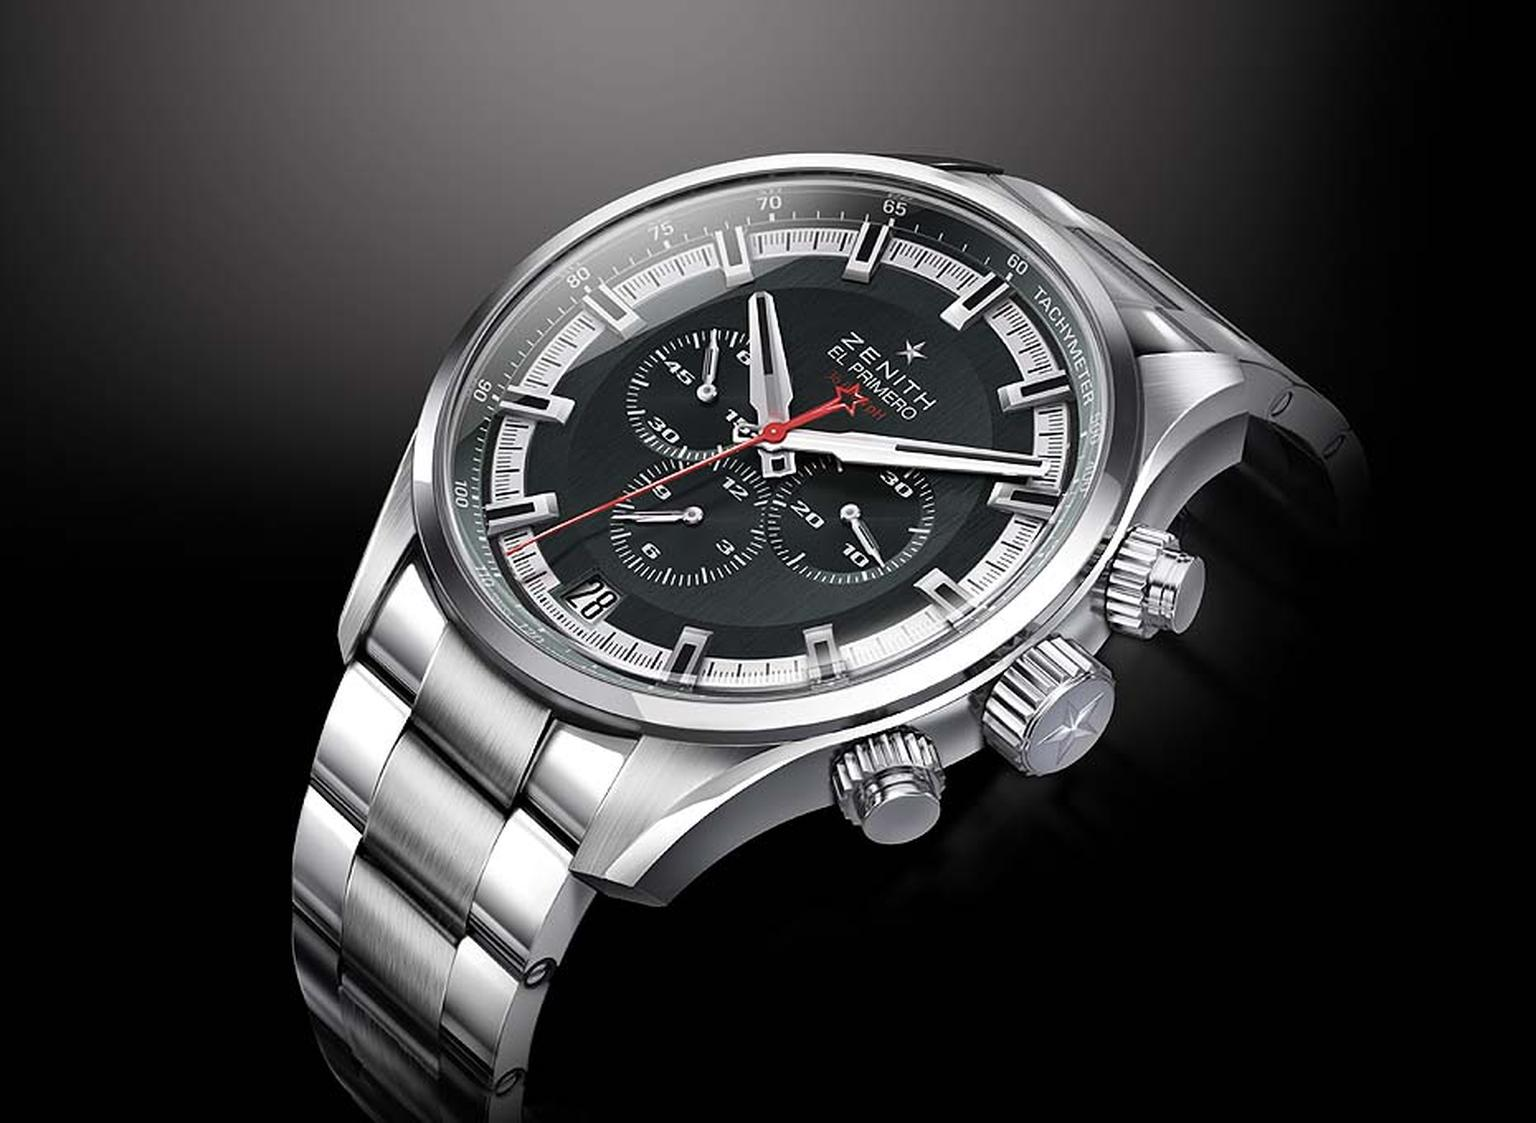 Zenith El Primero Sport men's watch beats to the El Primero 400 B calibre at a rate of 36,000 vibrations per hour, guaranteeing 1/10th of a second precision and a 50-hour power reserve for the hour, minute, chronograph, date and small seconds functions. M